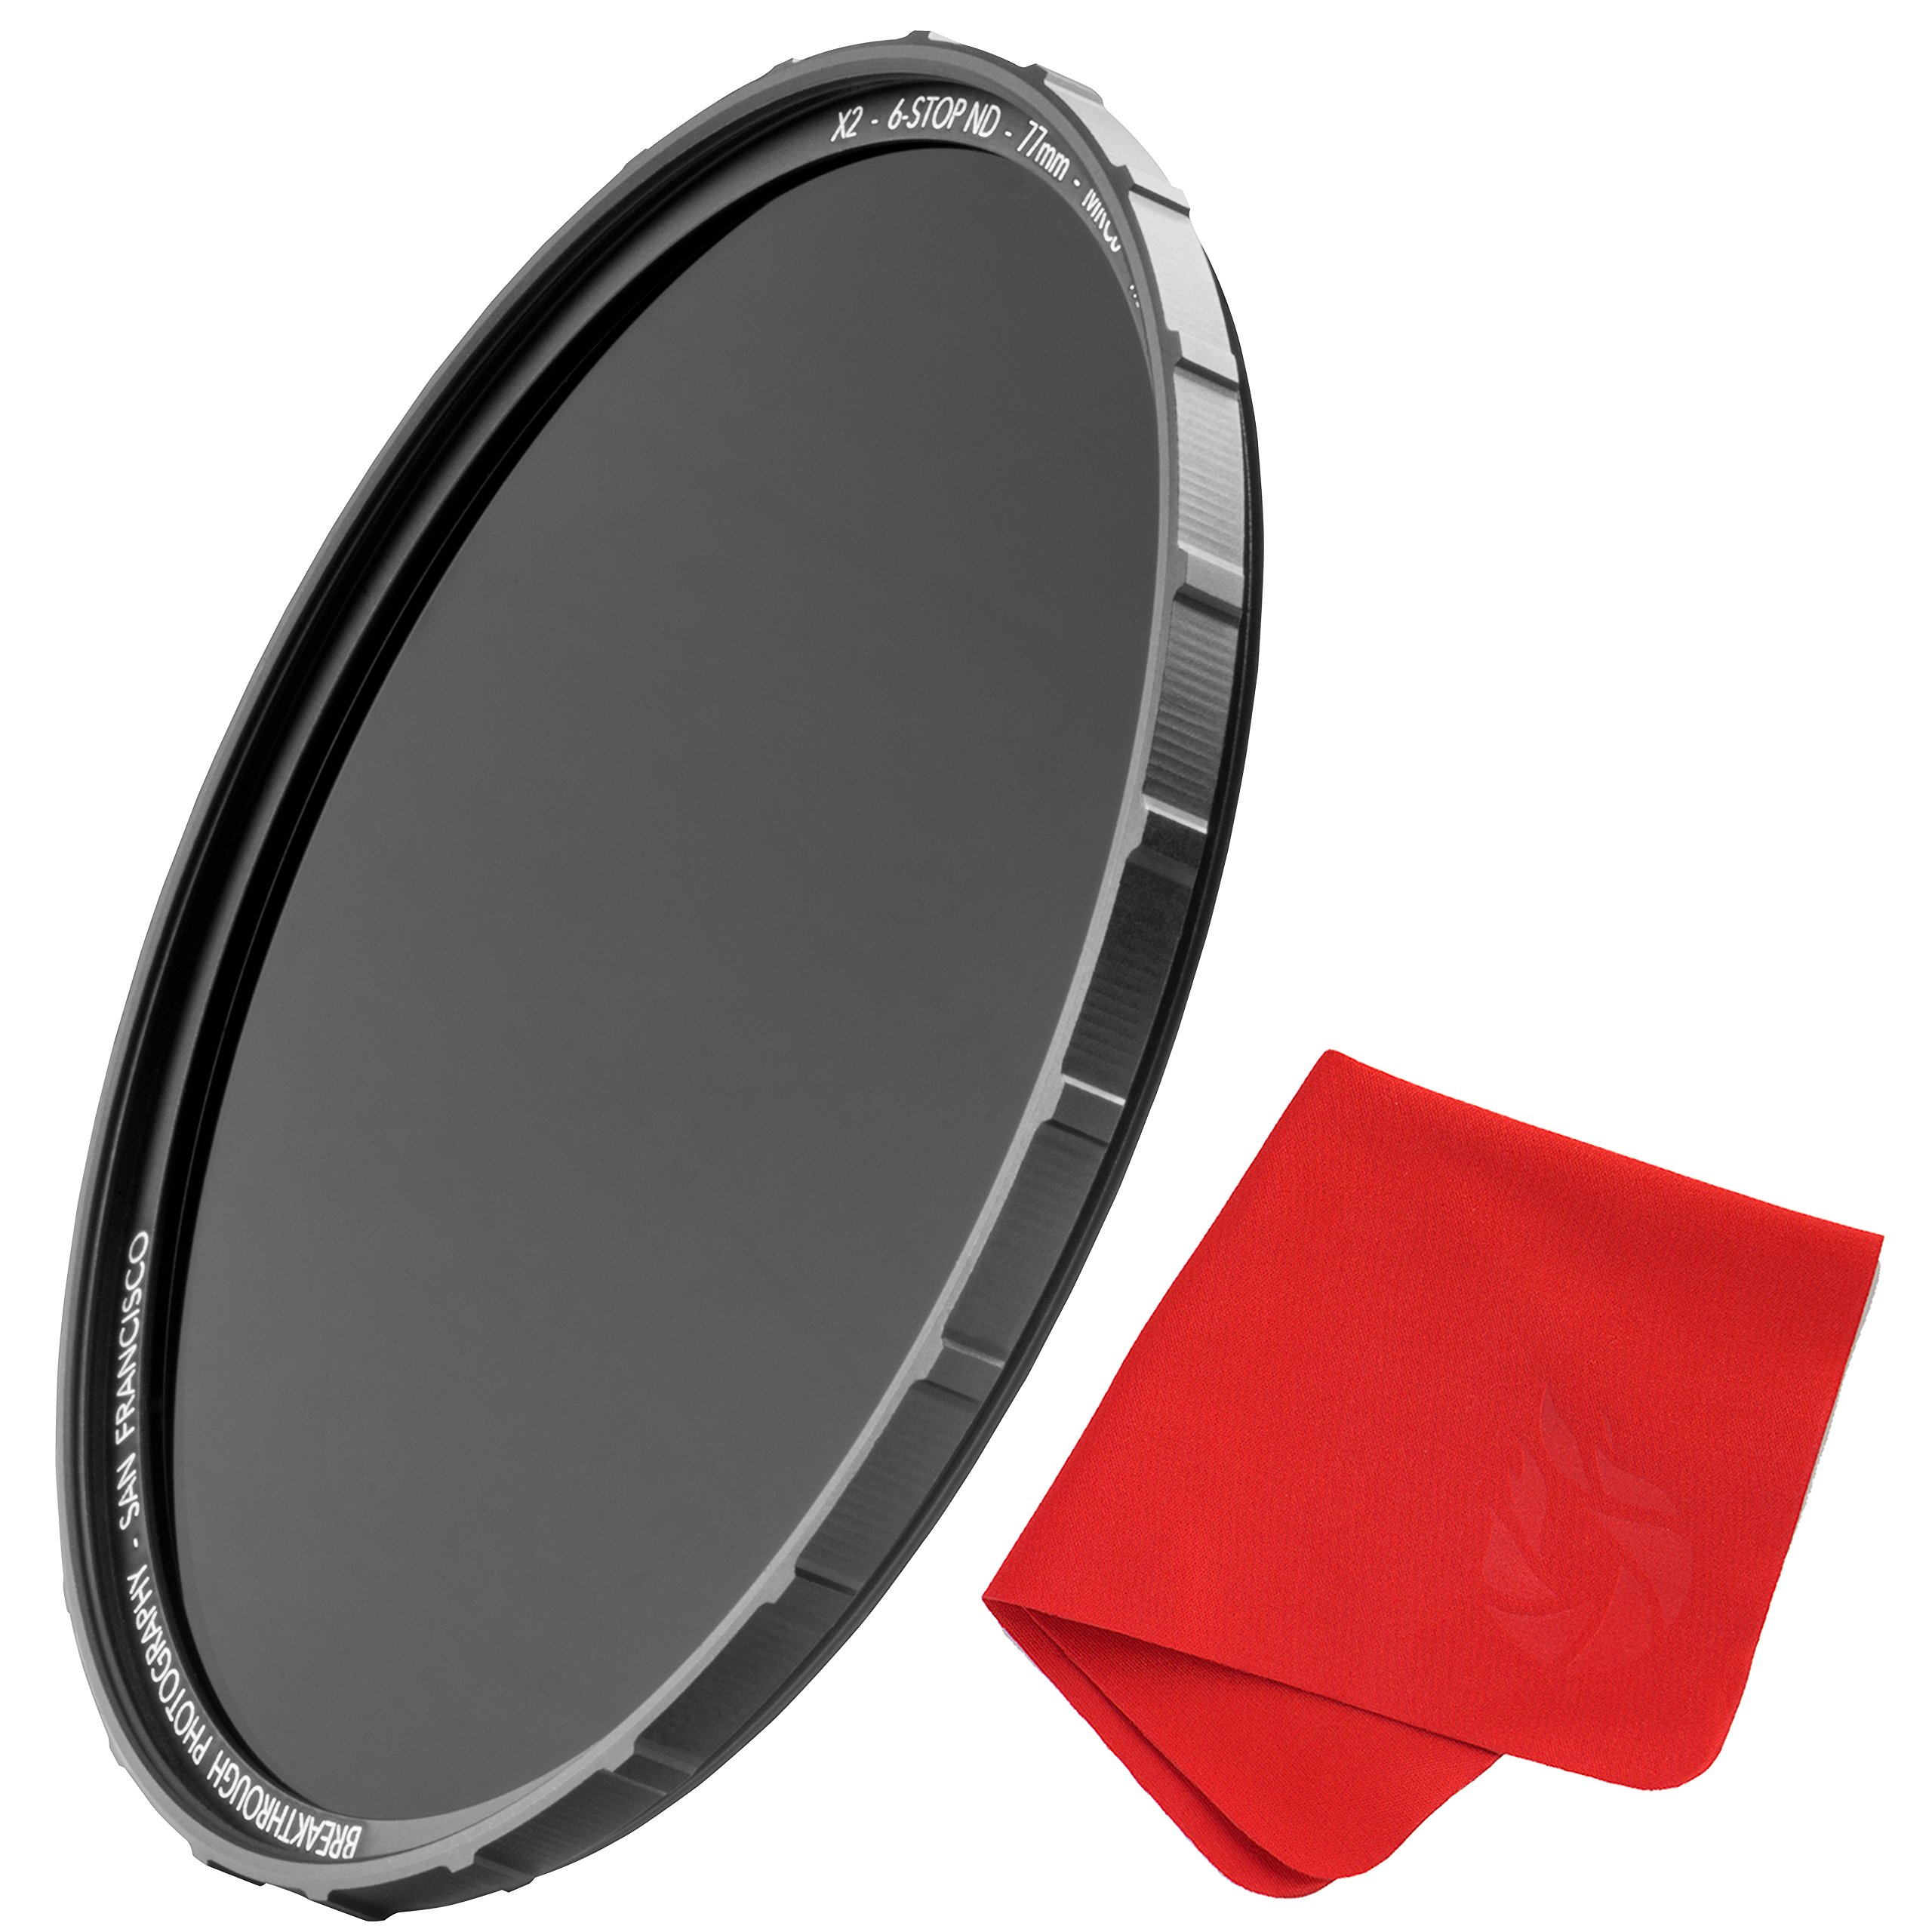 58mm X2 3-Stop ND Filter For Camera Lenses - Neutral Density Professional Photography Filter with Lens Cloth - MRC8, Nanotec, Ultra-slim, Weather-Sealed by Breakthrough Photography by Breakthrough Photography